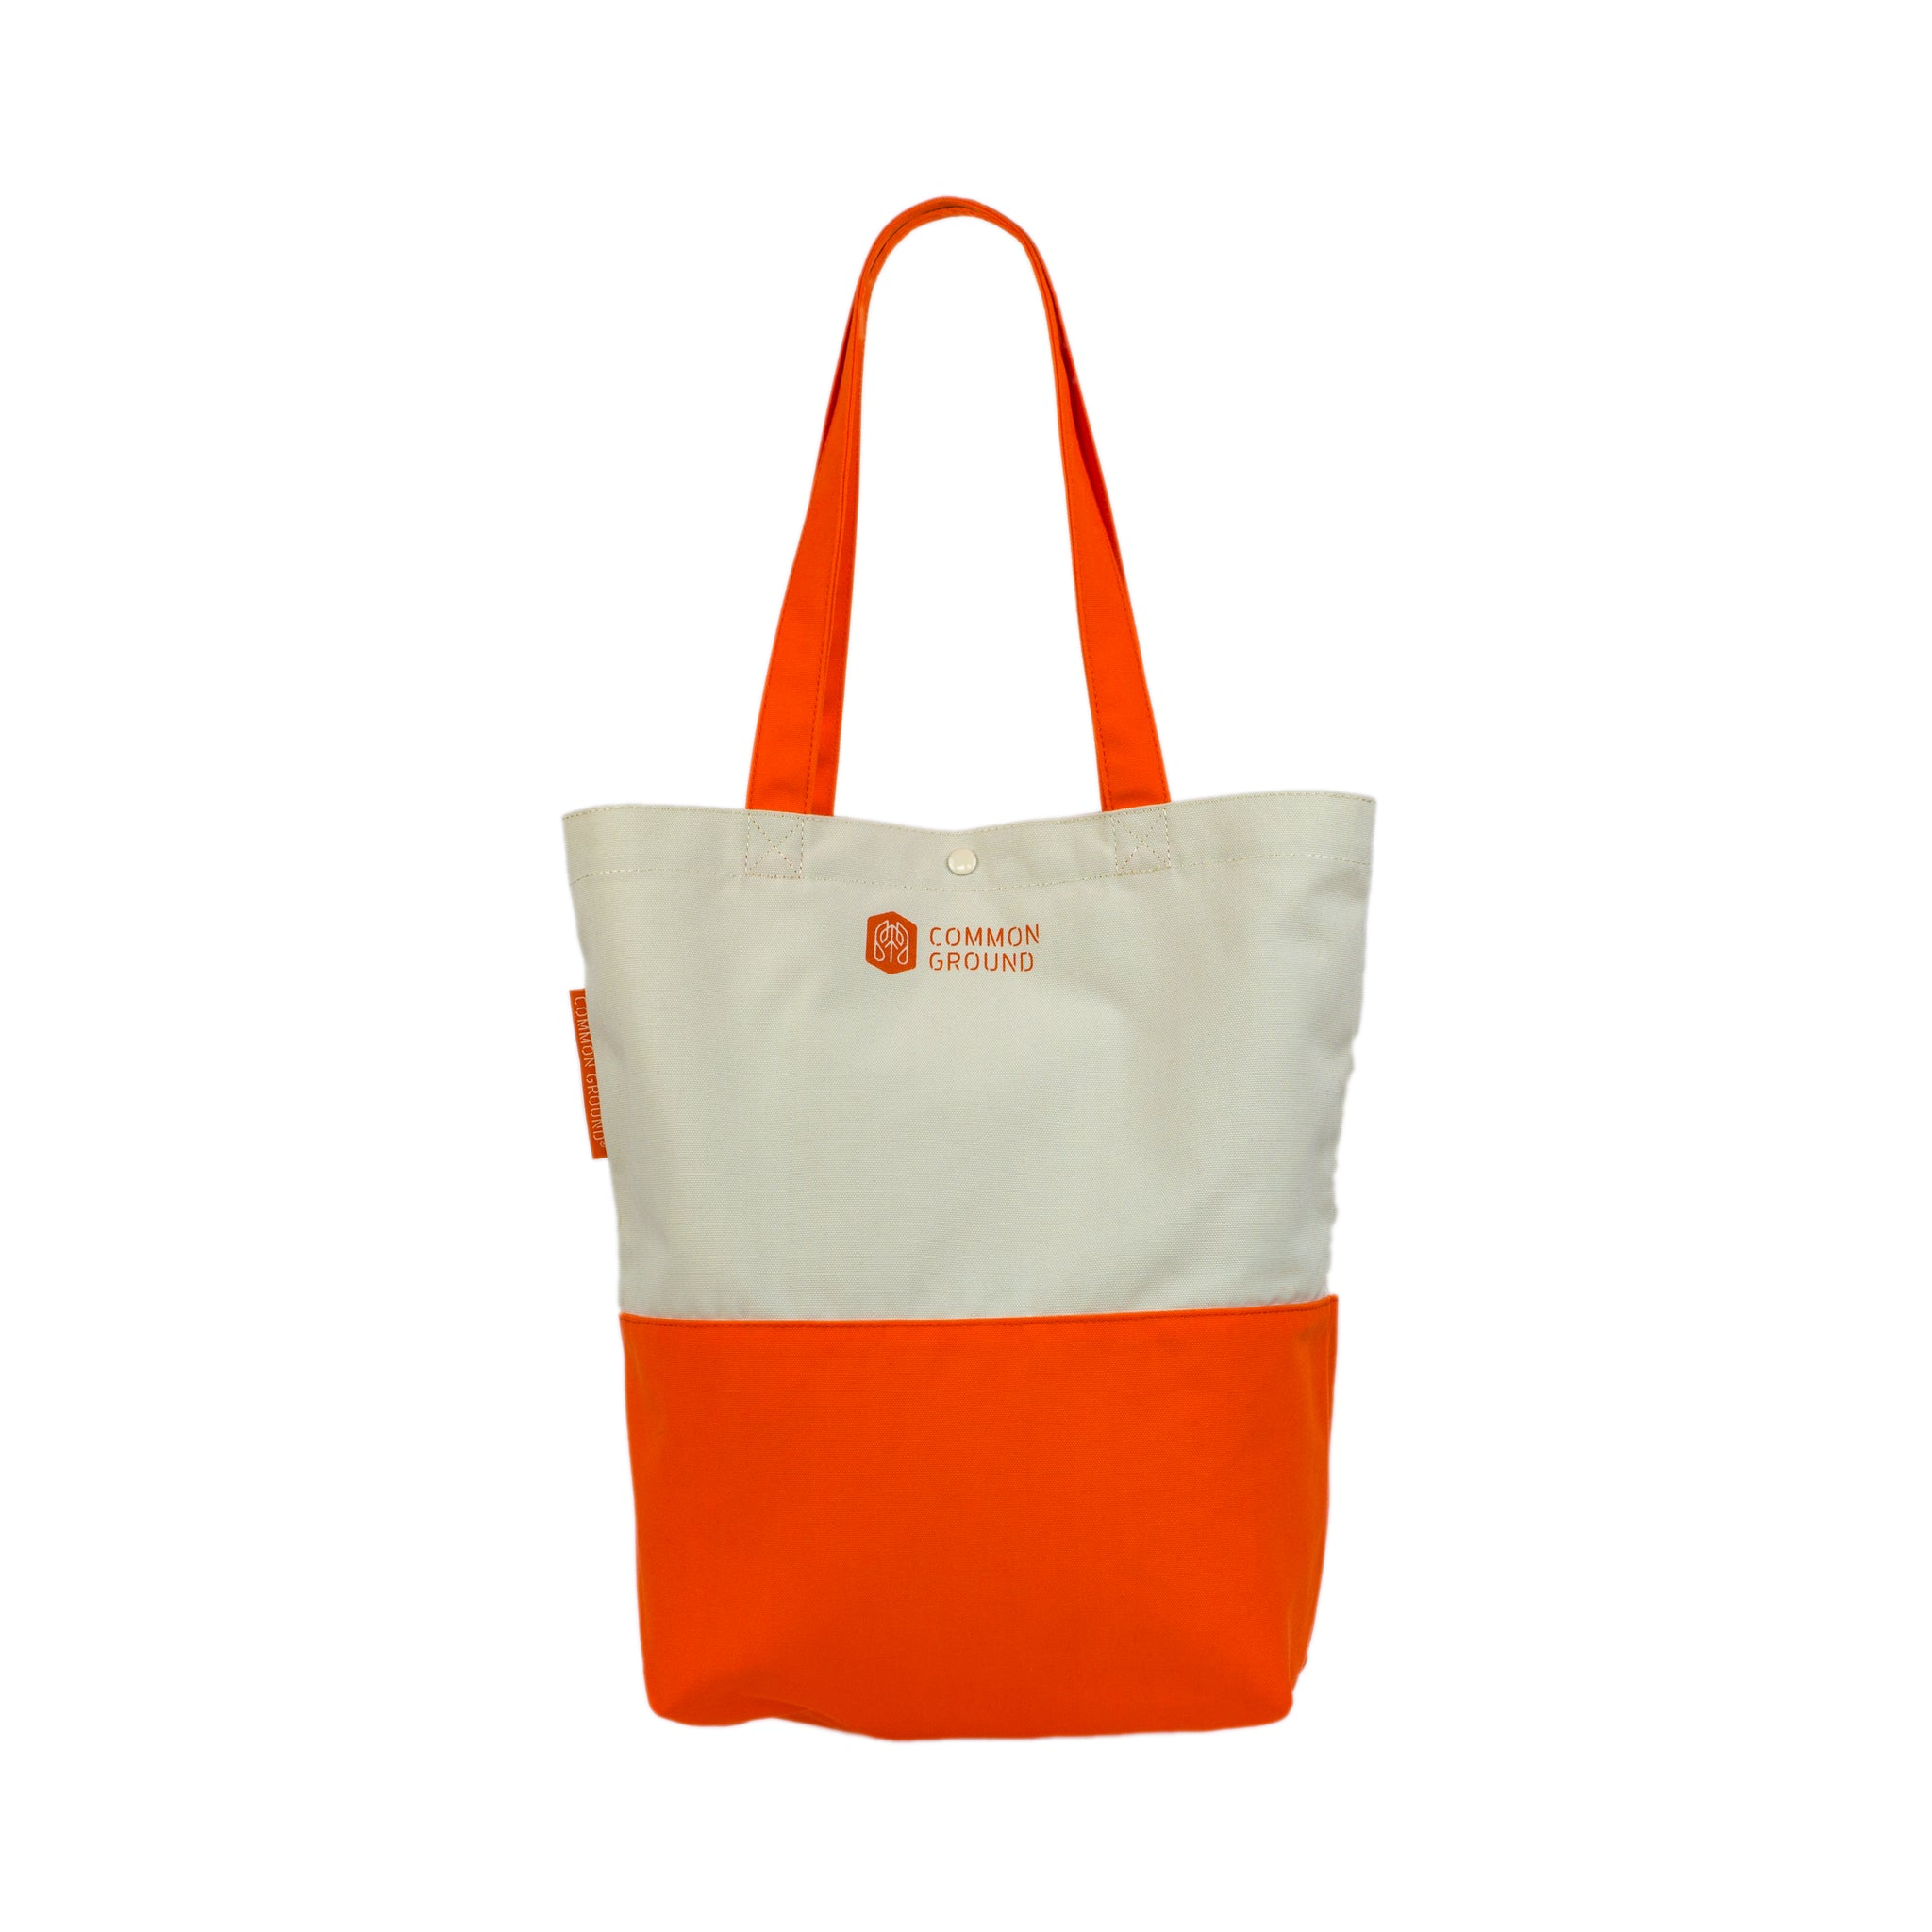 Vibrant_Orange - Common Ground Utility Tote Bag Rear View